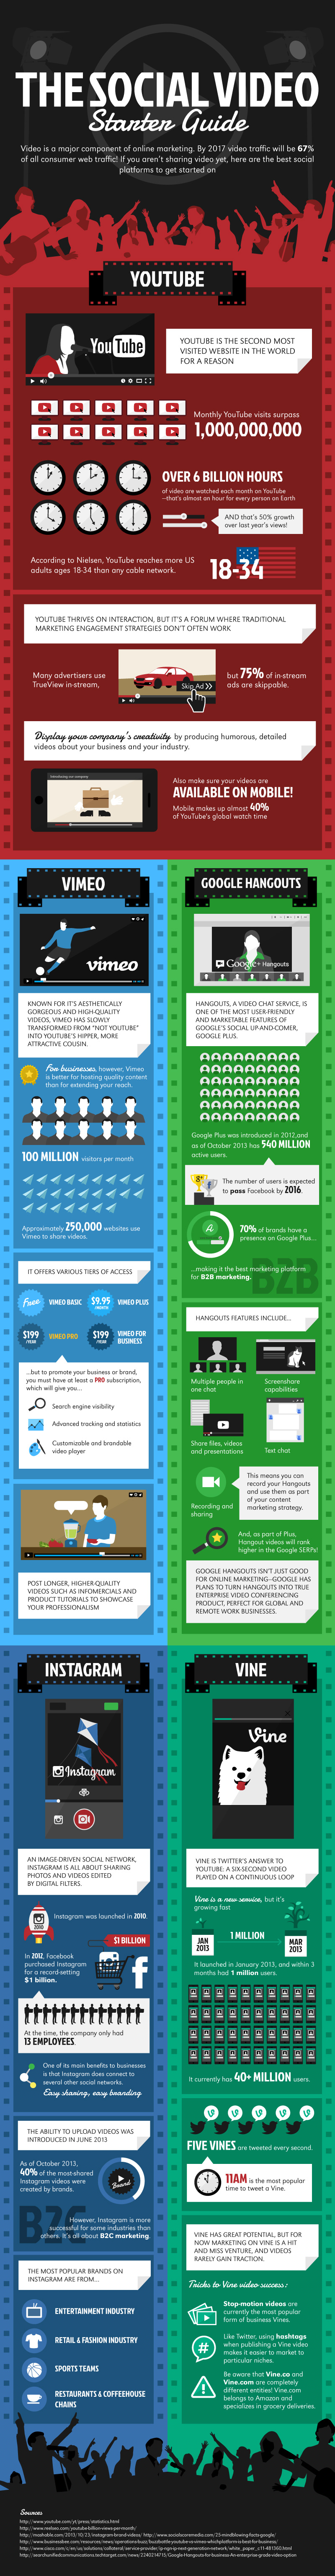 the rise of social video